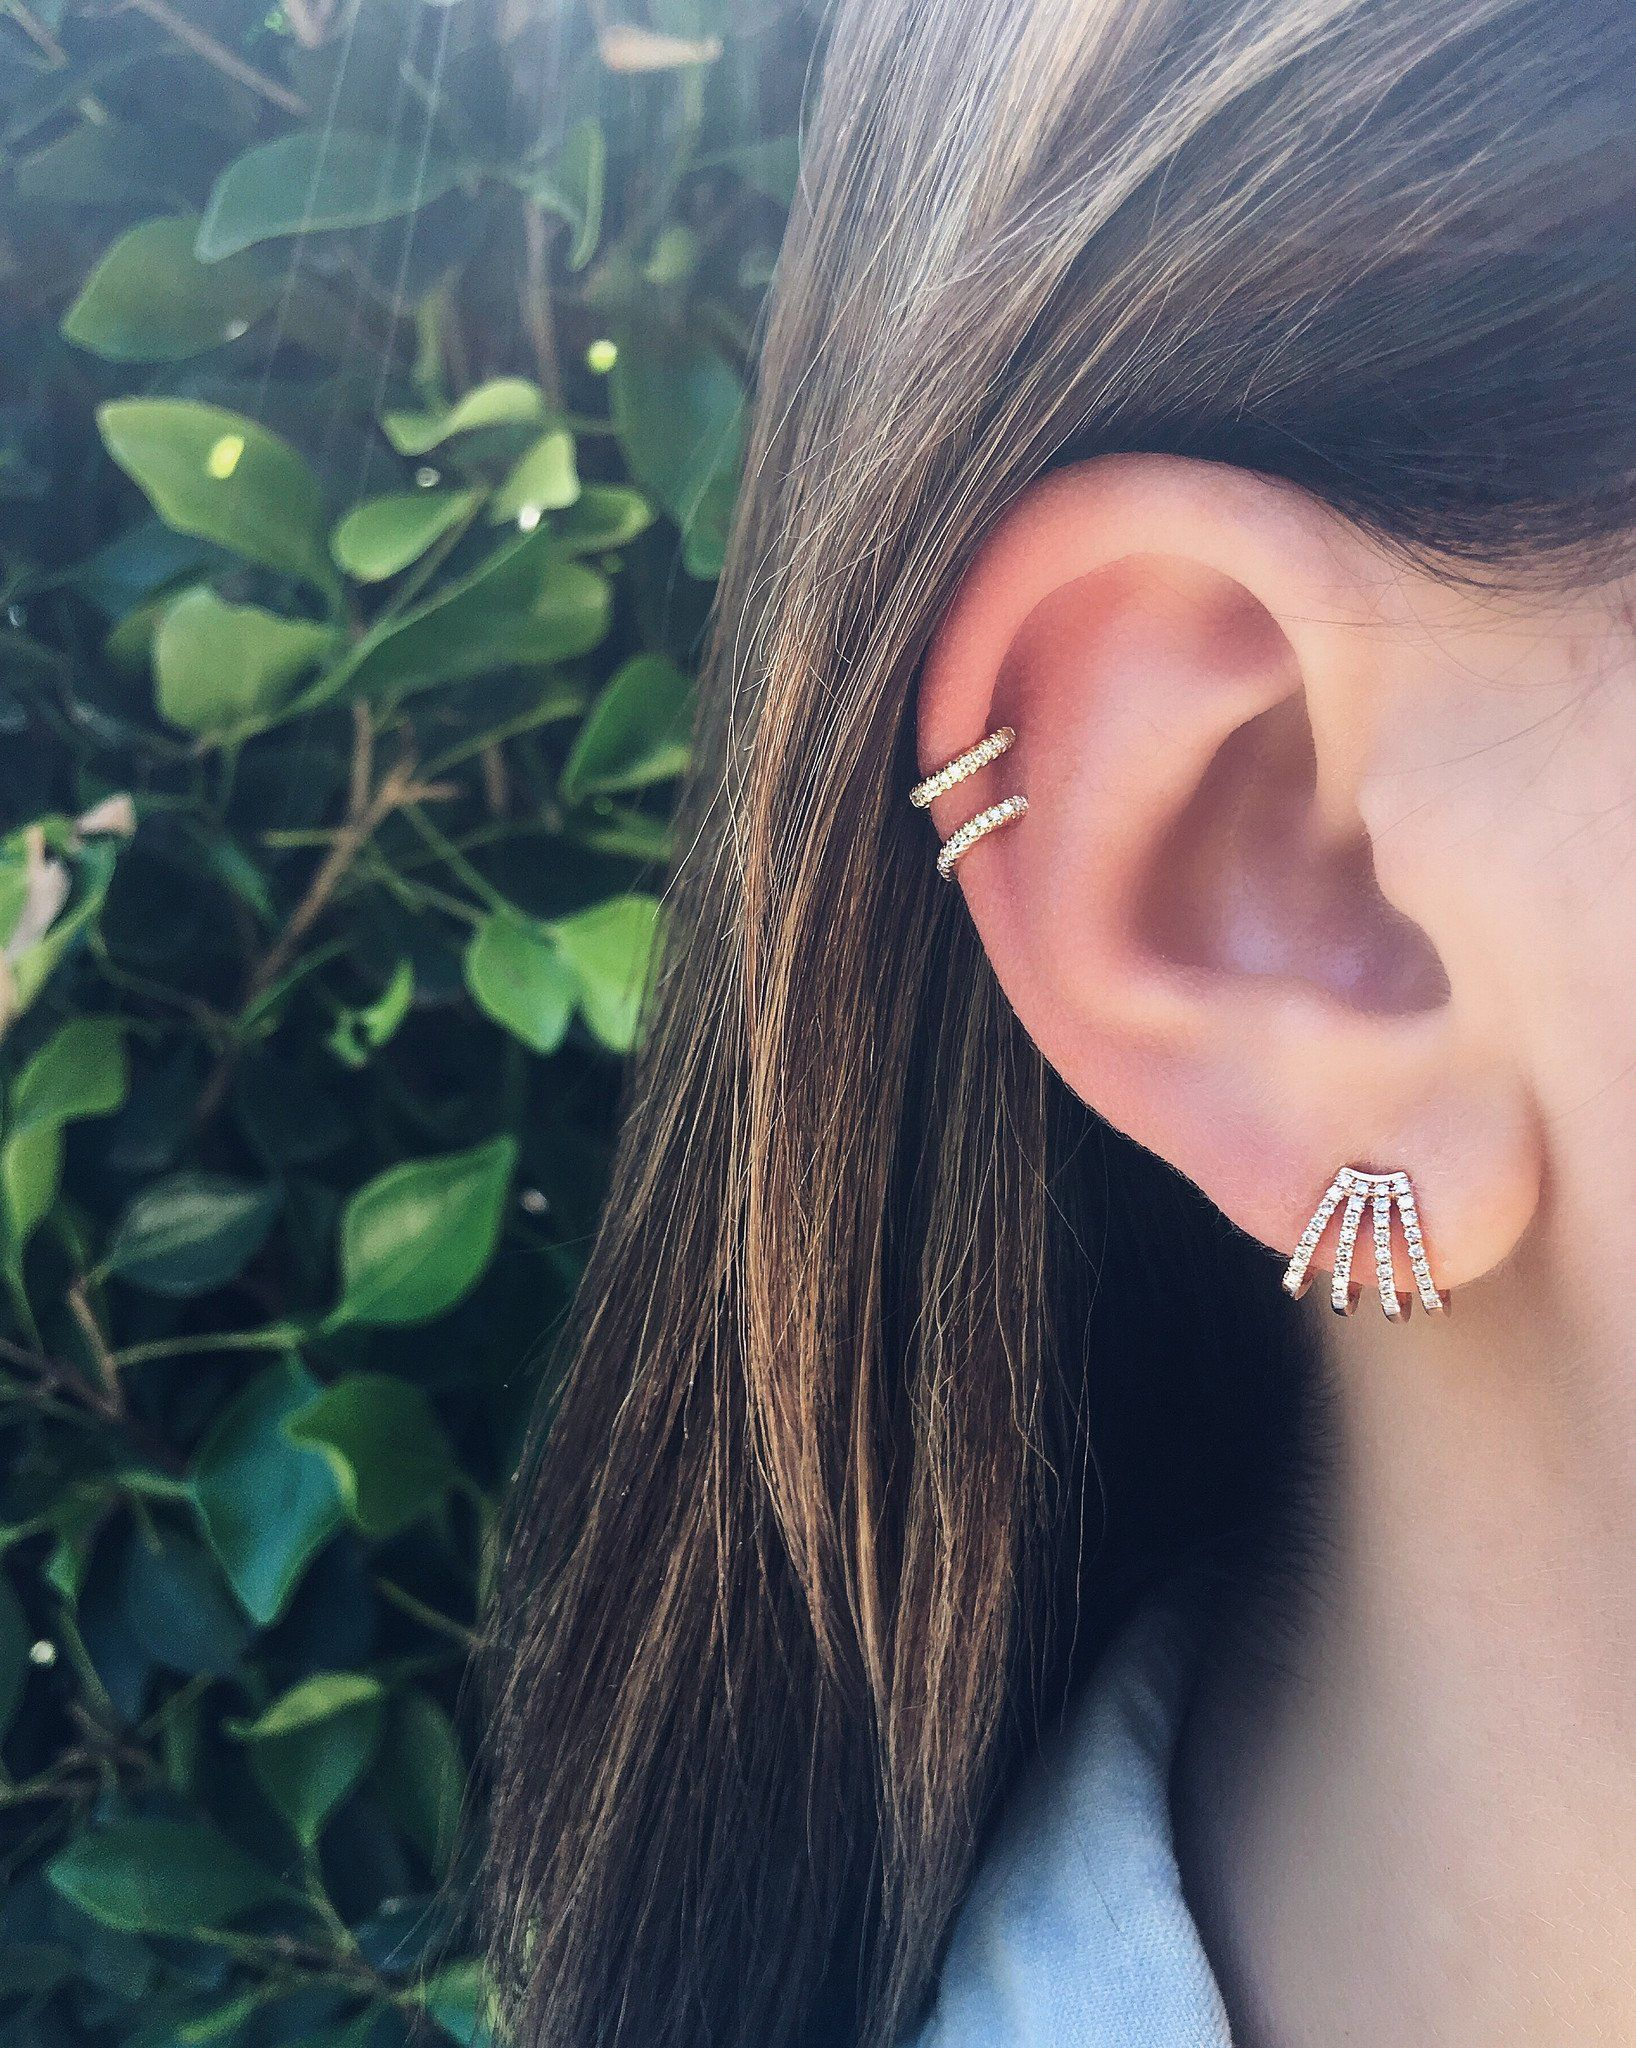 Nose piercing ripped out  Single Diamond Cartilage Ear Cuff No Piercing  jewellery